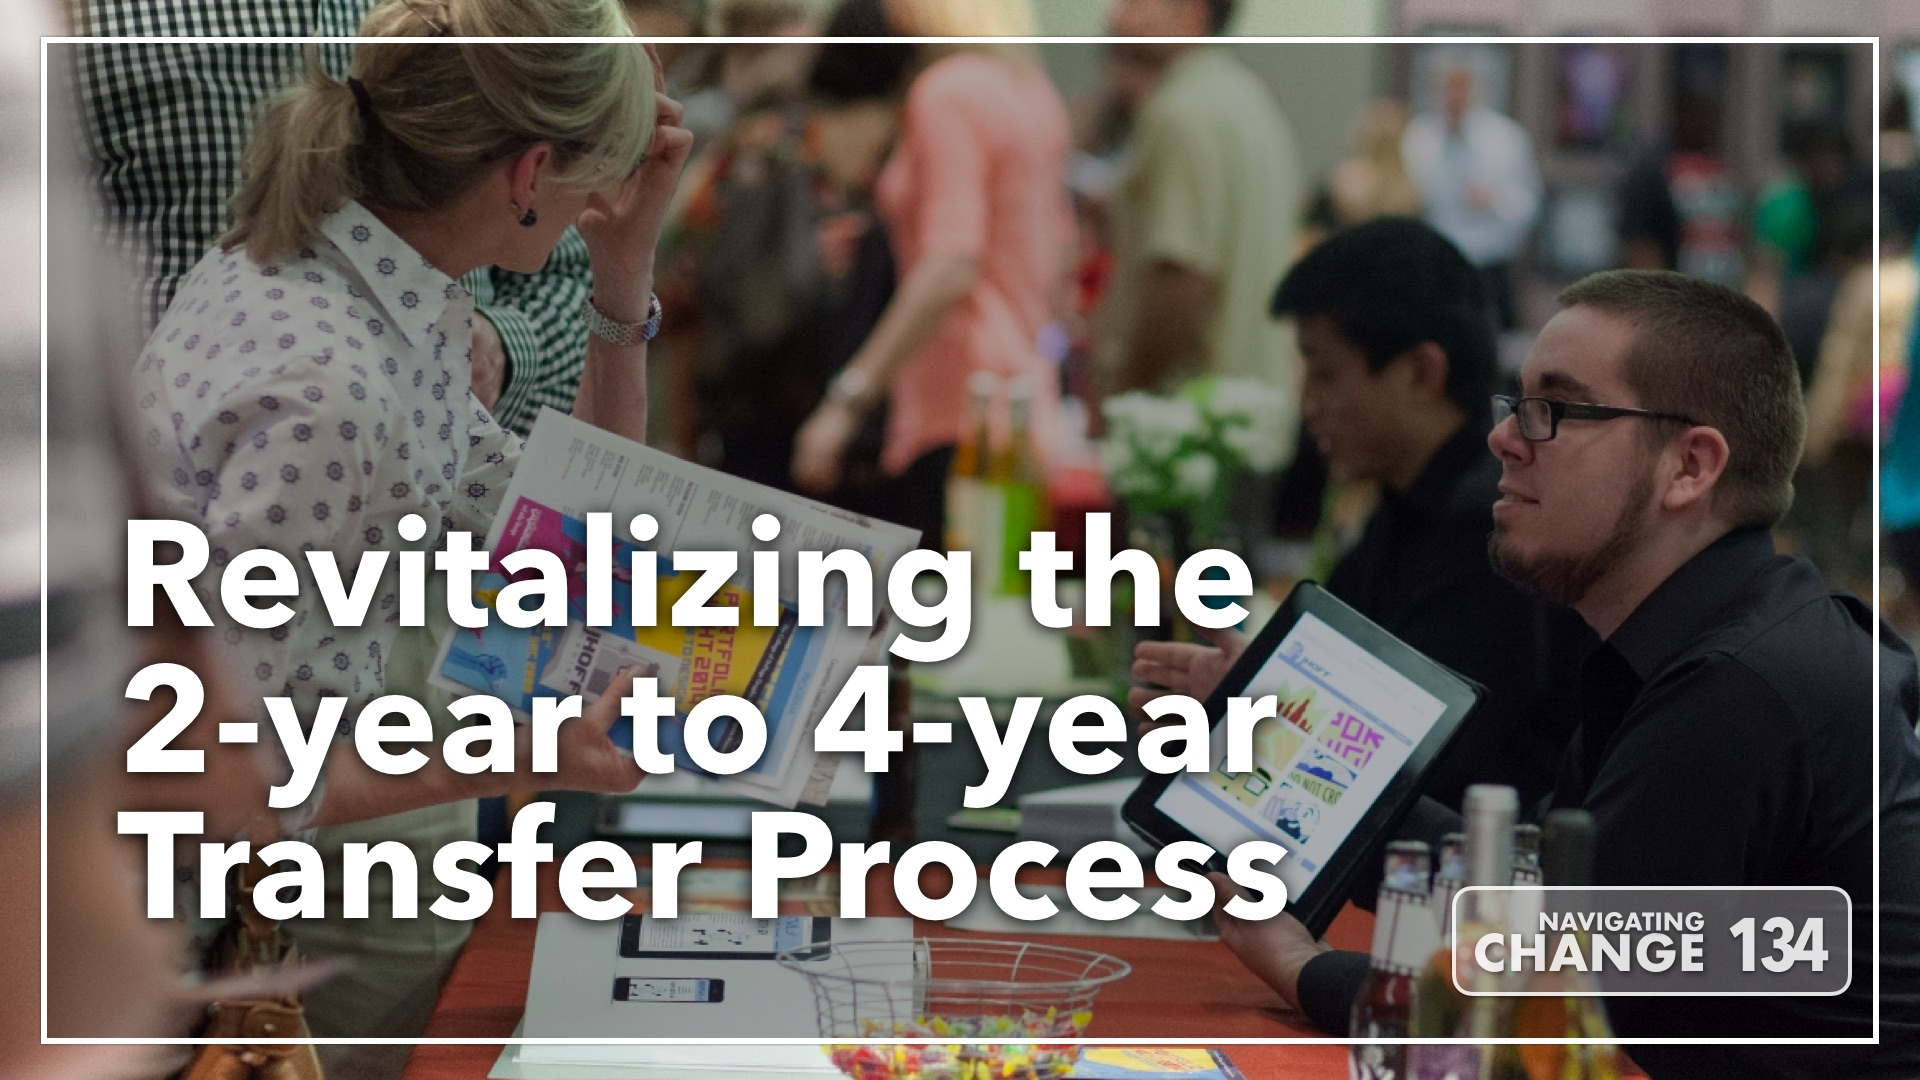 Listen to Revitalizing the 2-year to 4-year Transfer Process on Navigating Change The Education Podcast